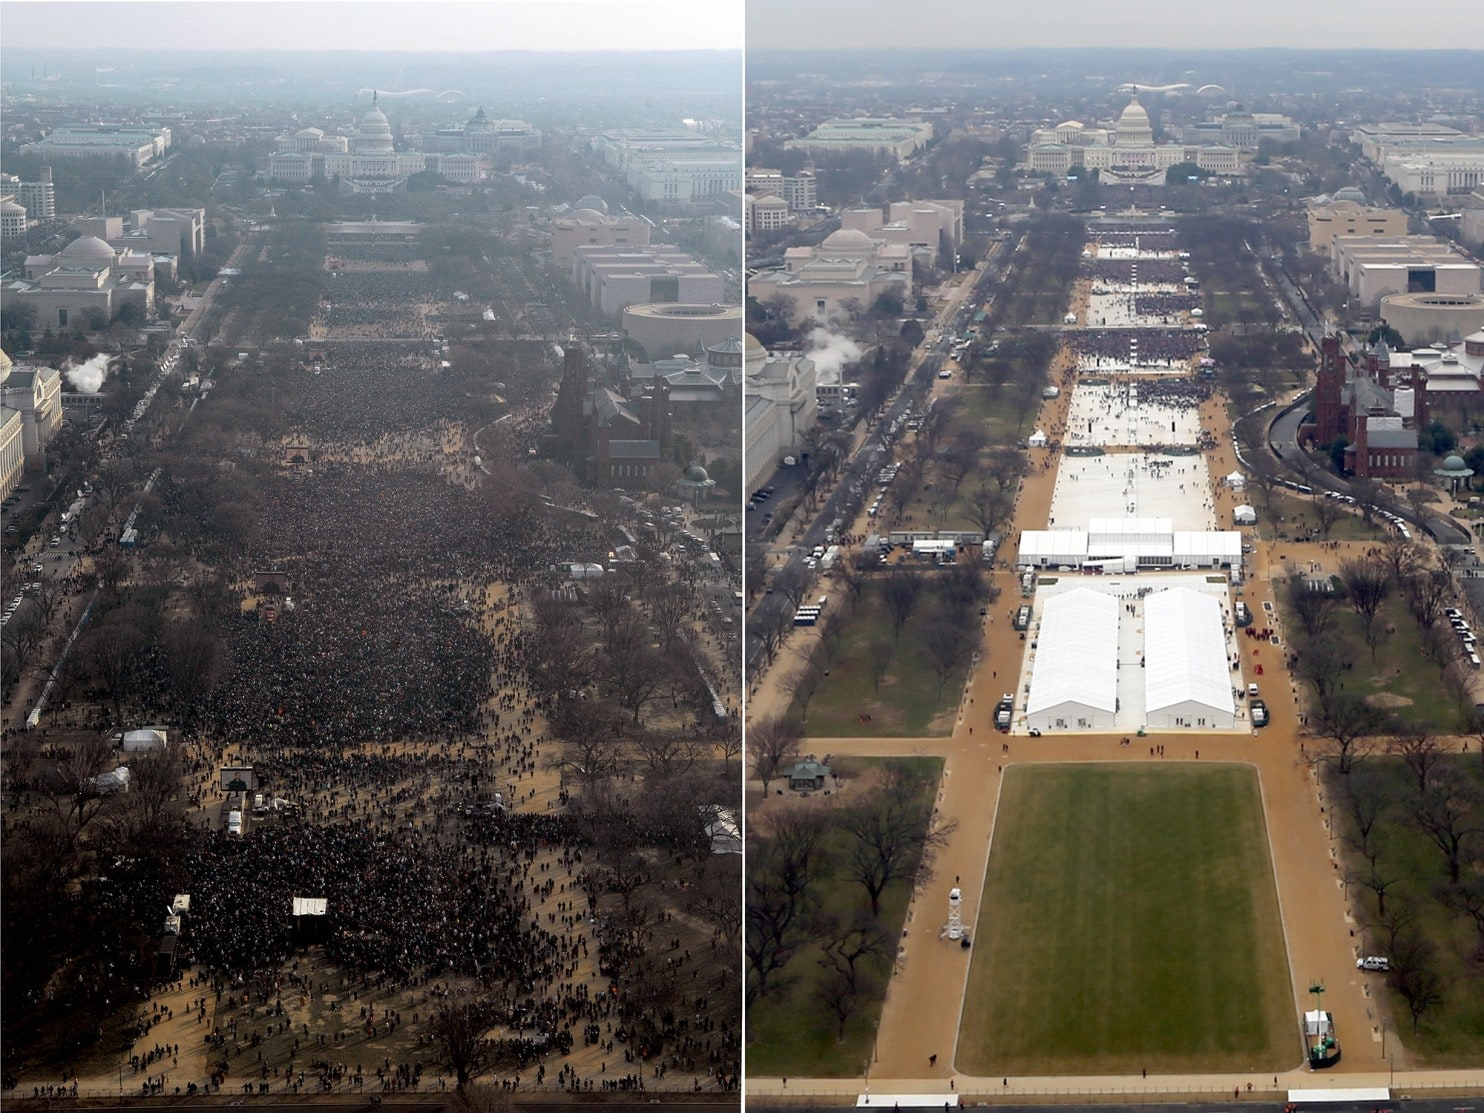 (l) President Obama's first inauguration on the Mall in Washington, 2009. (r) The same view of President Trump's 2017 inauguration. (Images courtesy National Park Service.)